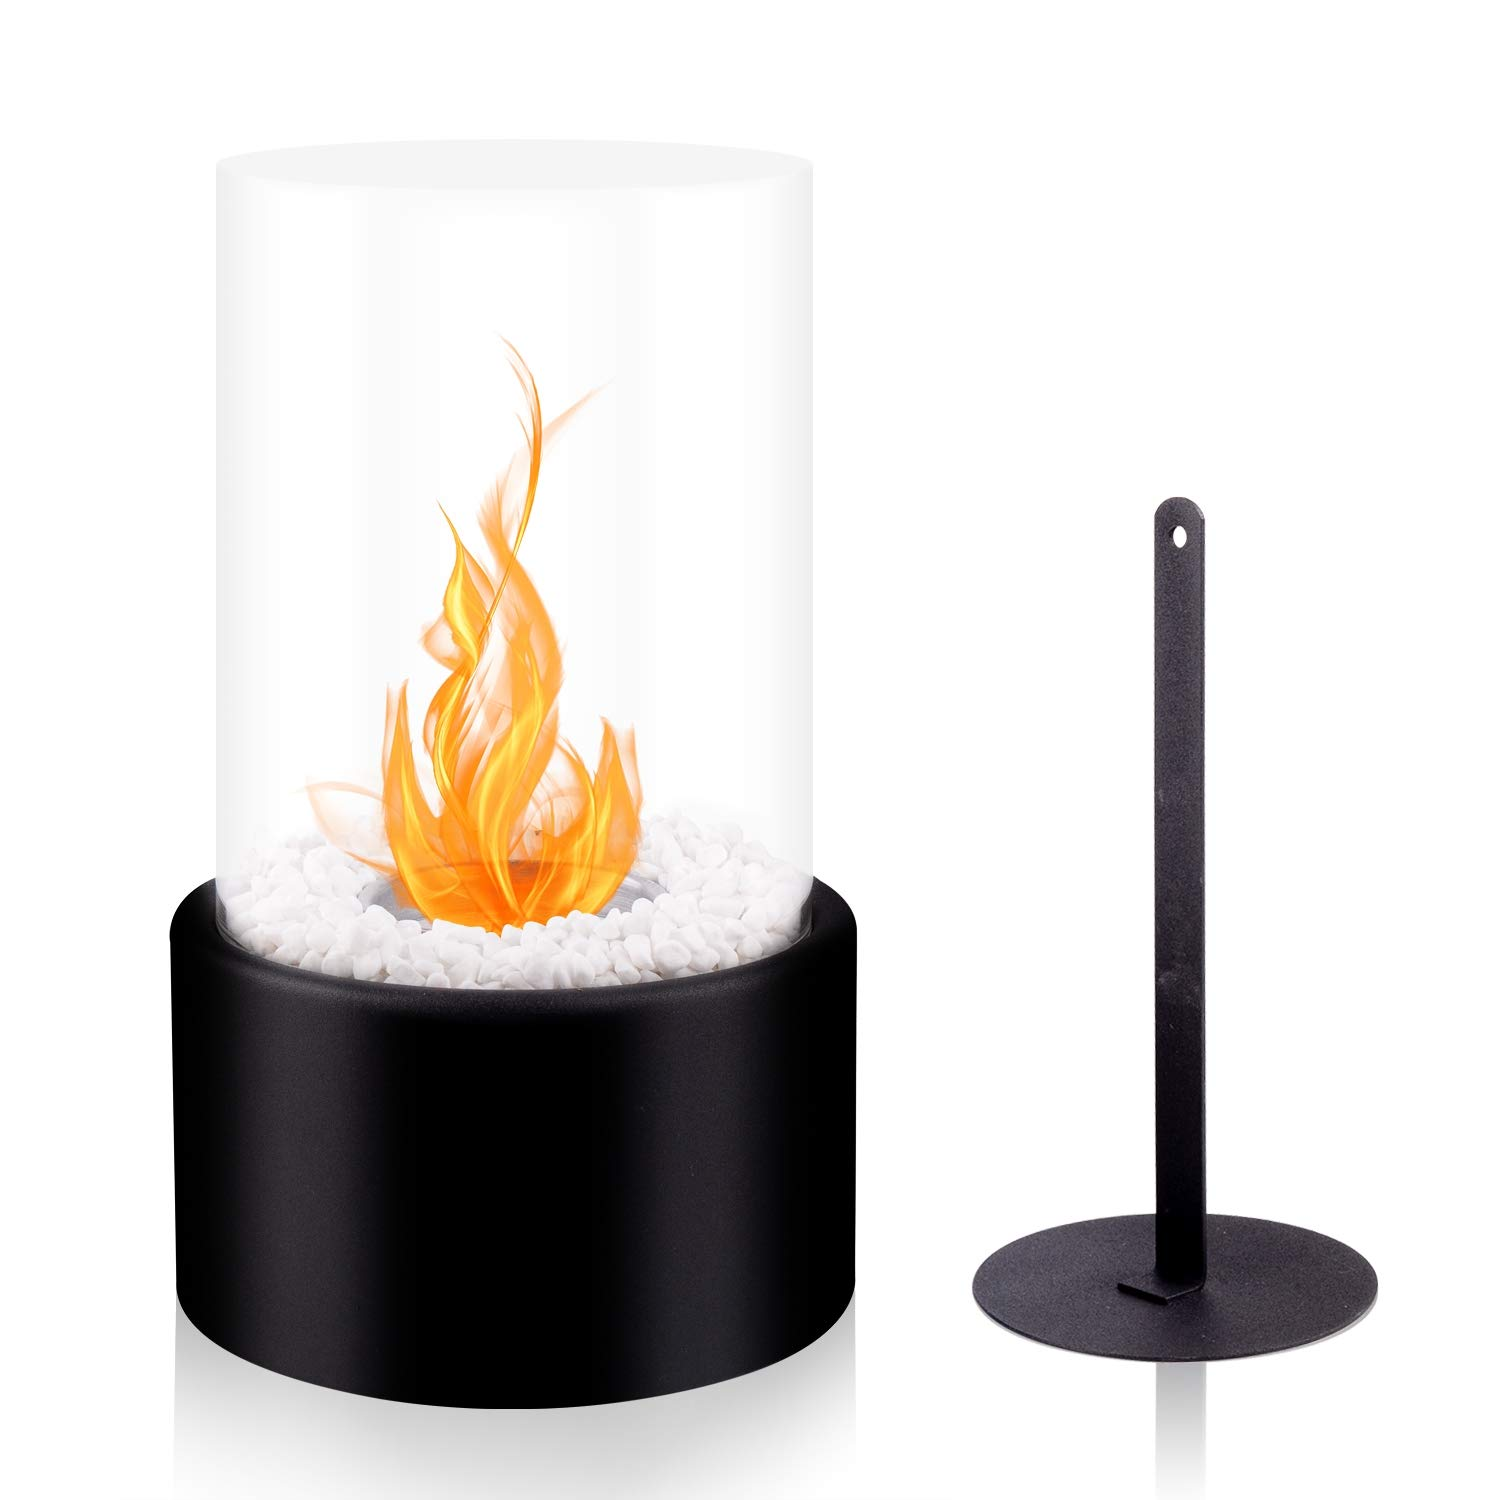 BRIAN & DANY Ventless Tabletop Fireplace Somkeless Clean Indoor Outdoor Fire Pit Portable Fire Bowl Pot Bio Ethanol Fireplace in Black w/Fire Killer and Pebbles by BRIAN & DANY